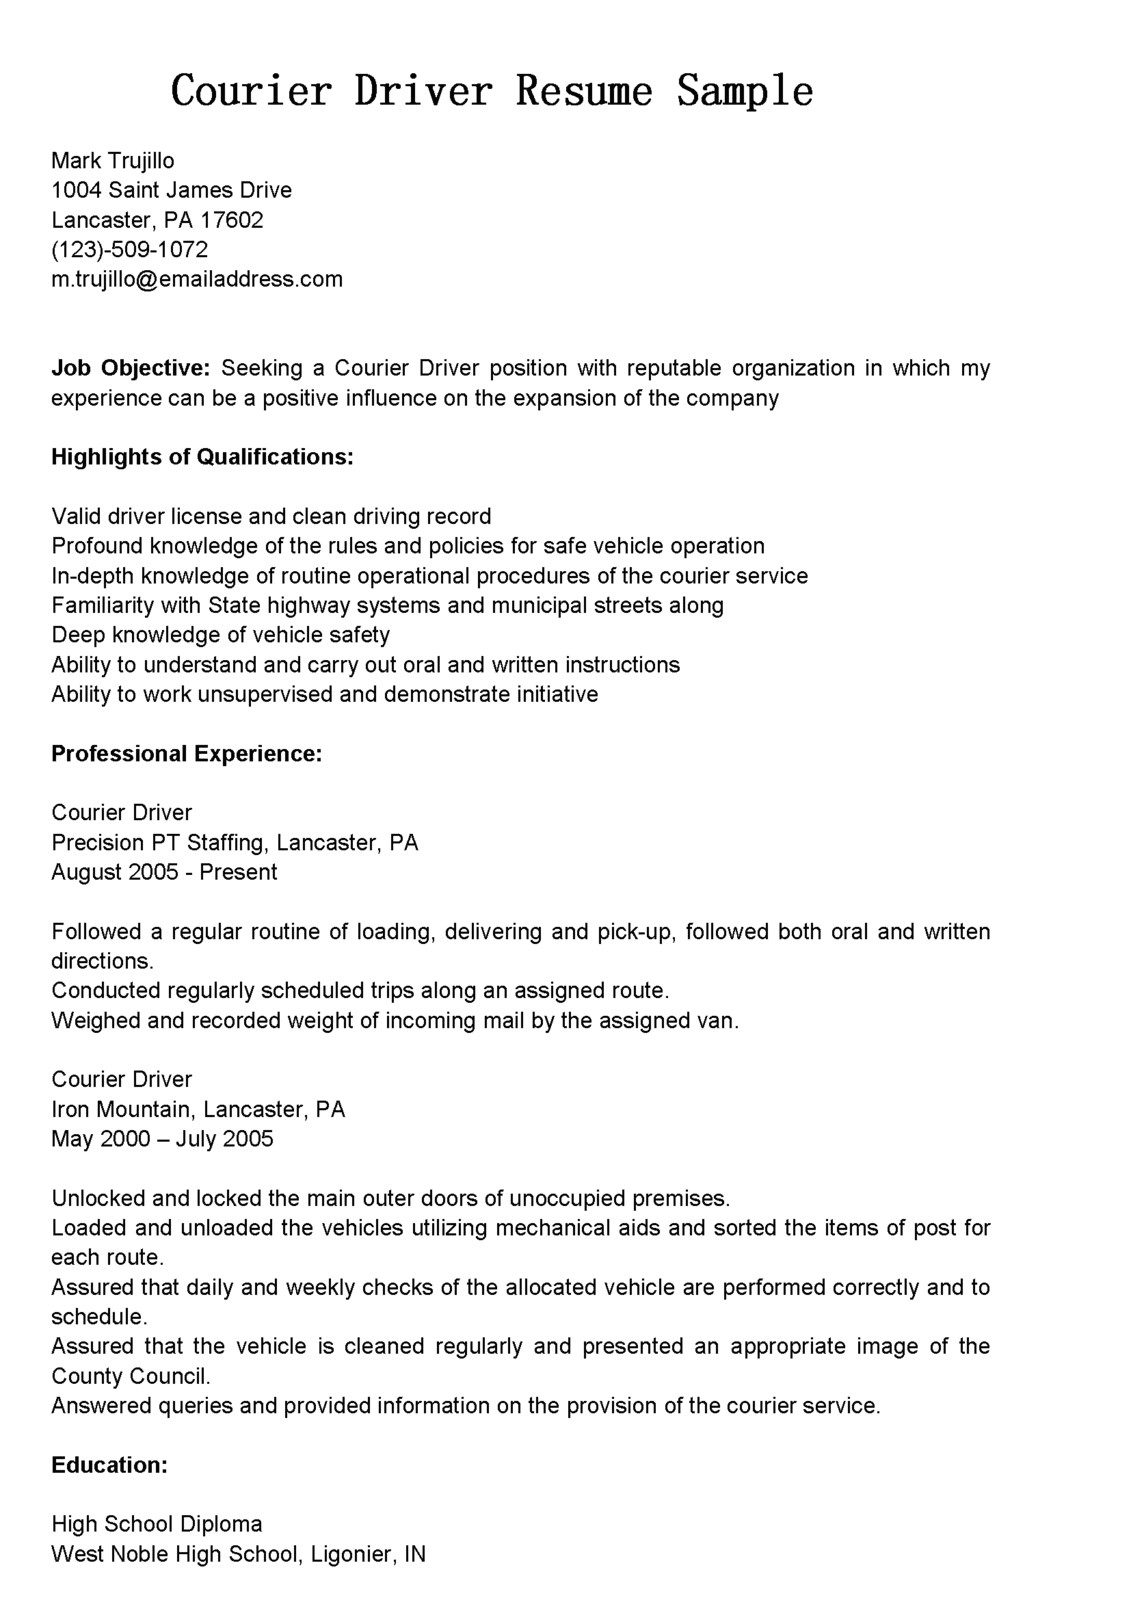 Courier Driver Resume Sample Driver Resumes Courier Driver Resume Sample